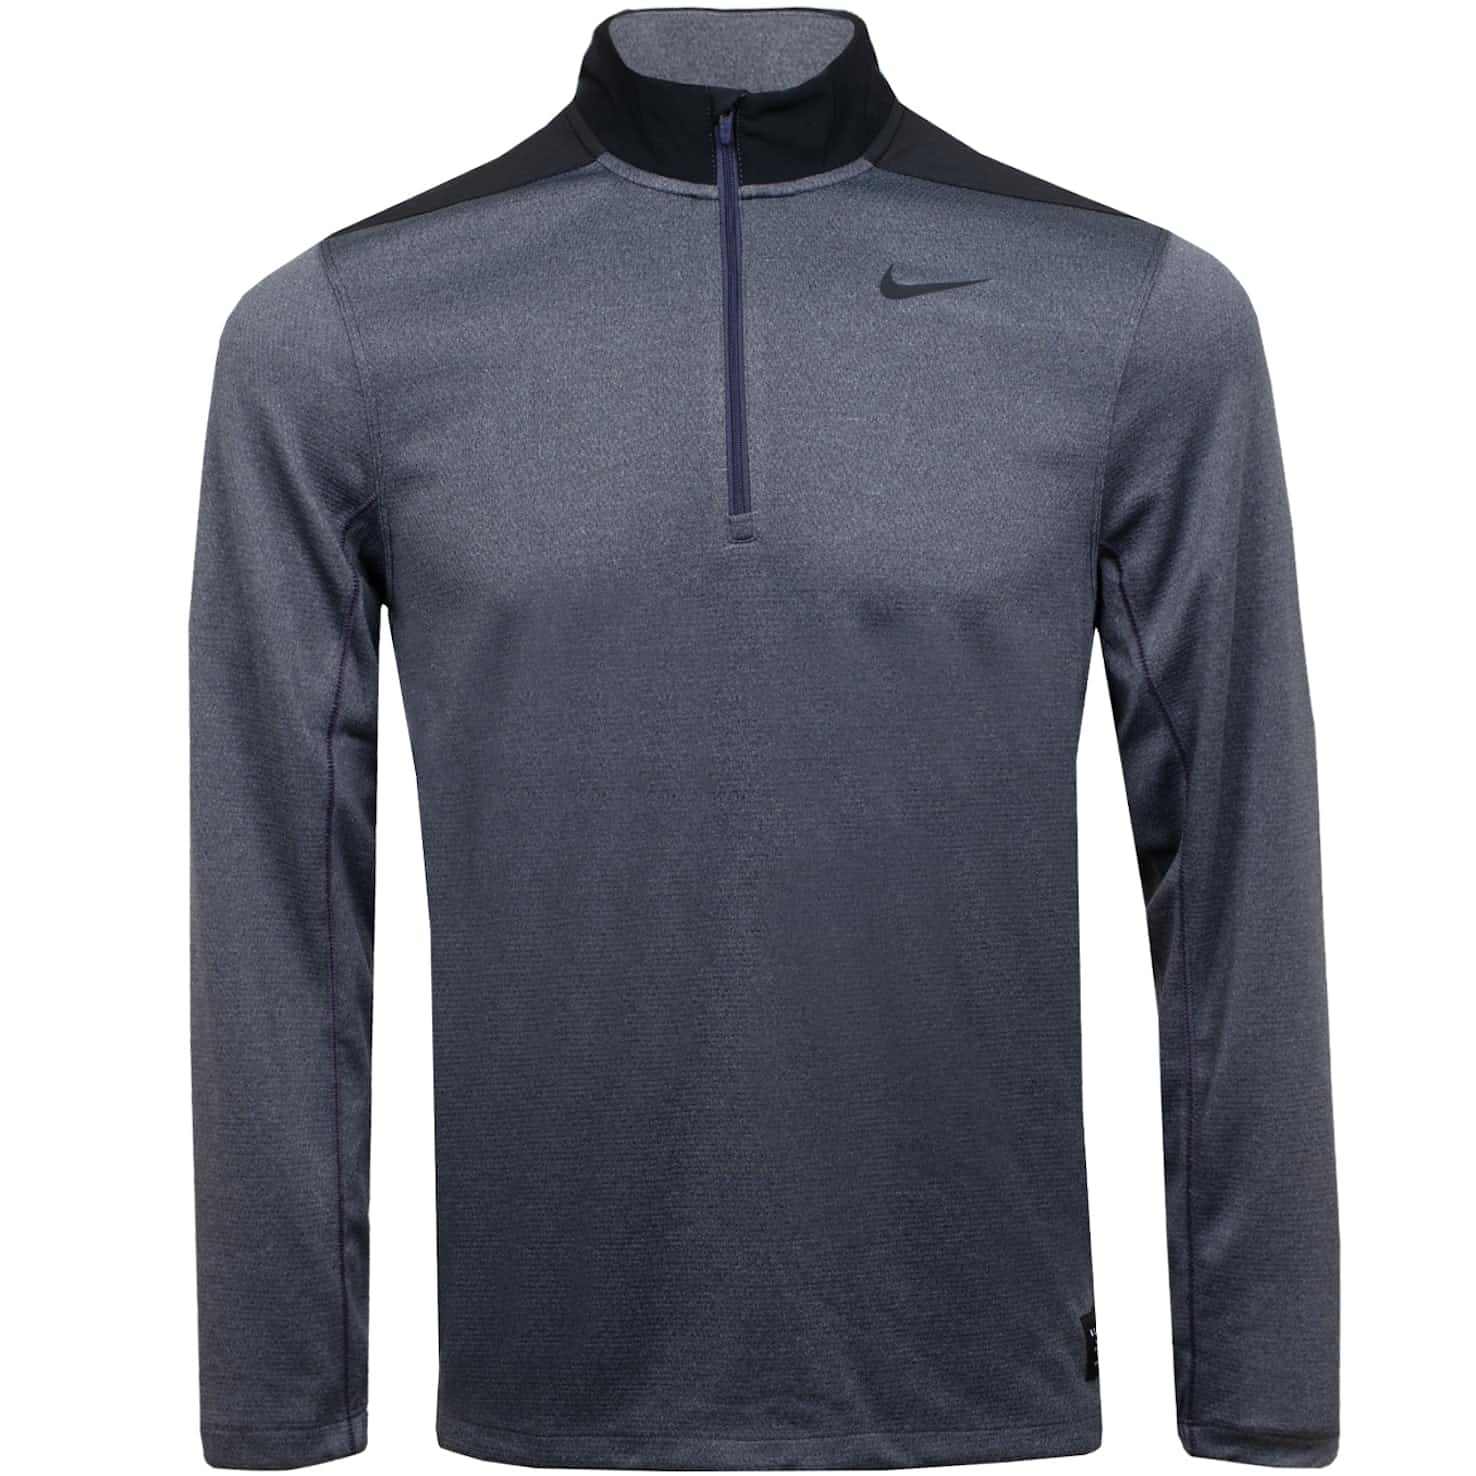 Nike Core Half Zip Dry Top Gridiron/Cool Grey - AW19